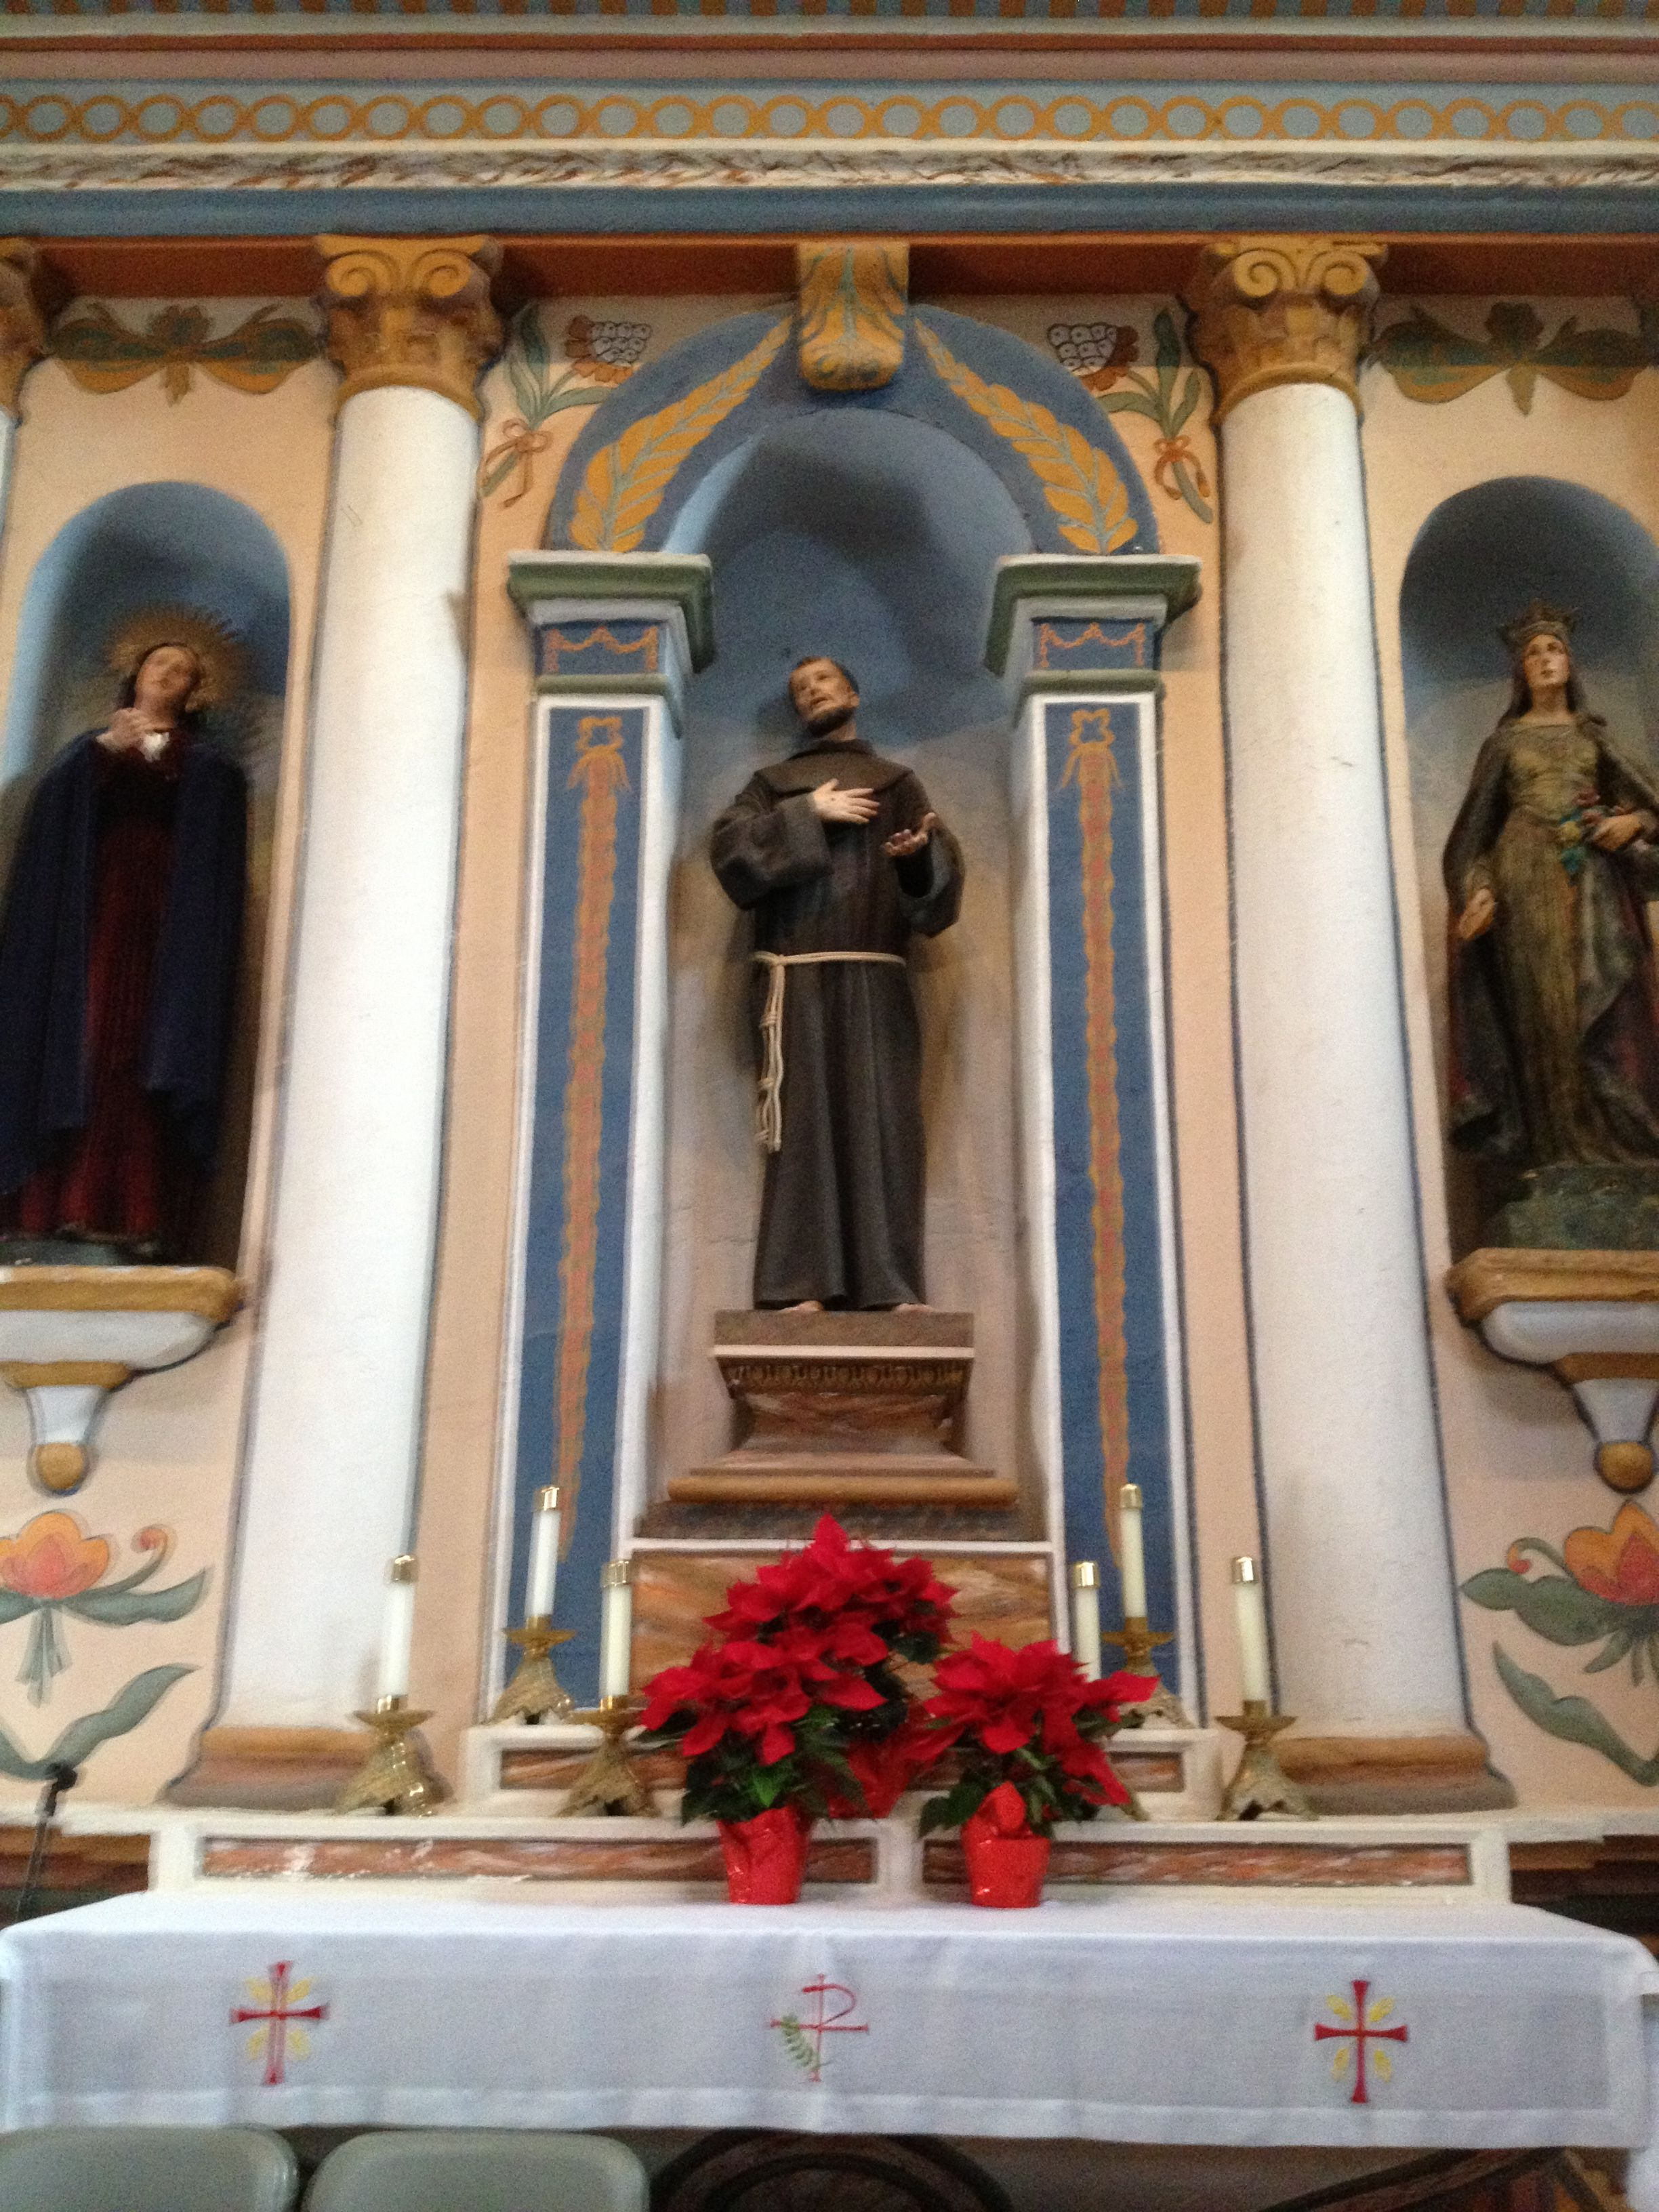 A Statue Of St Francis At The Church At Mission San Luis